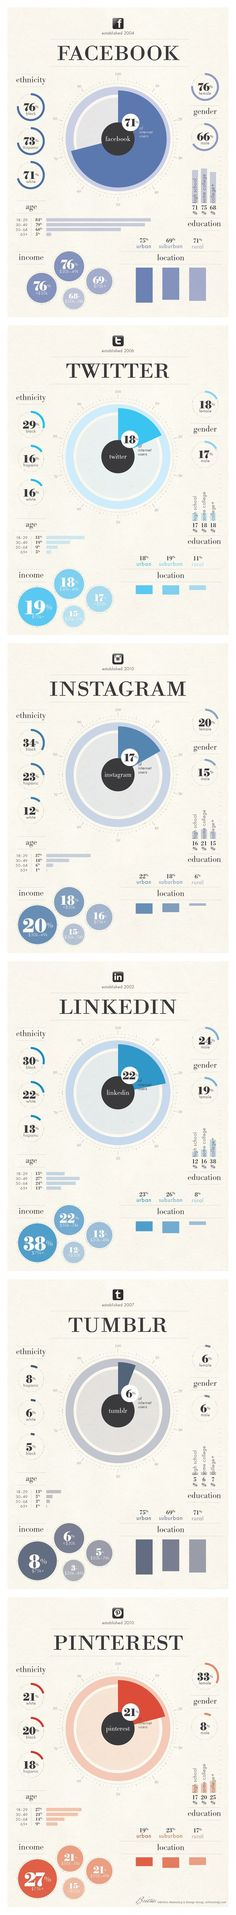 #SocialMedia 2014: User Demographics For Facebook, Twitter, Instagram, LinkedIn, Tumblr and #Pinterest